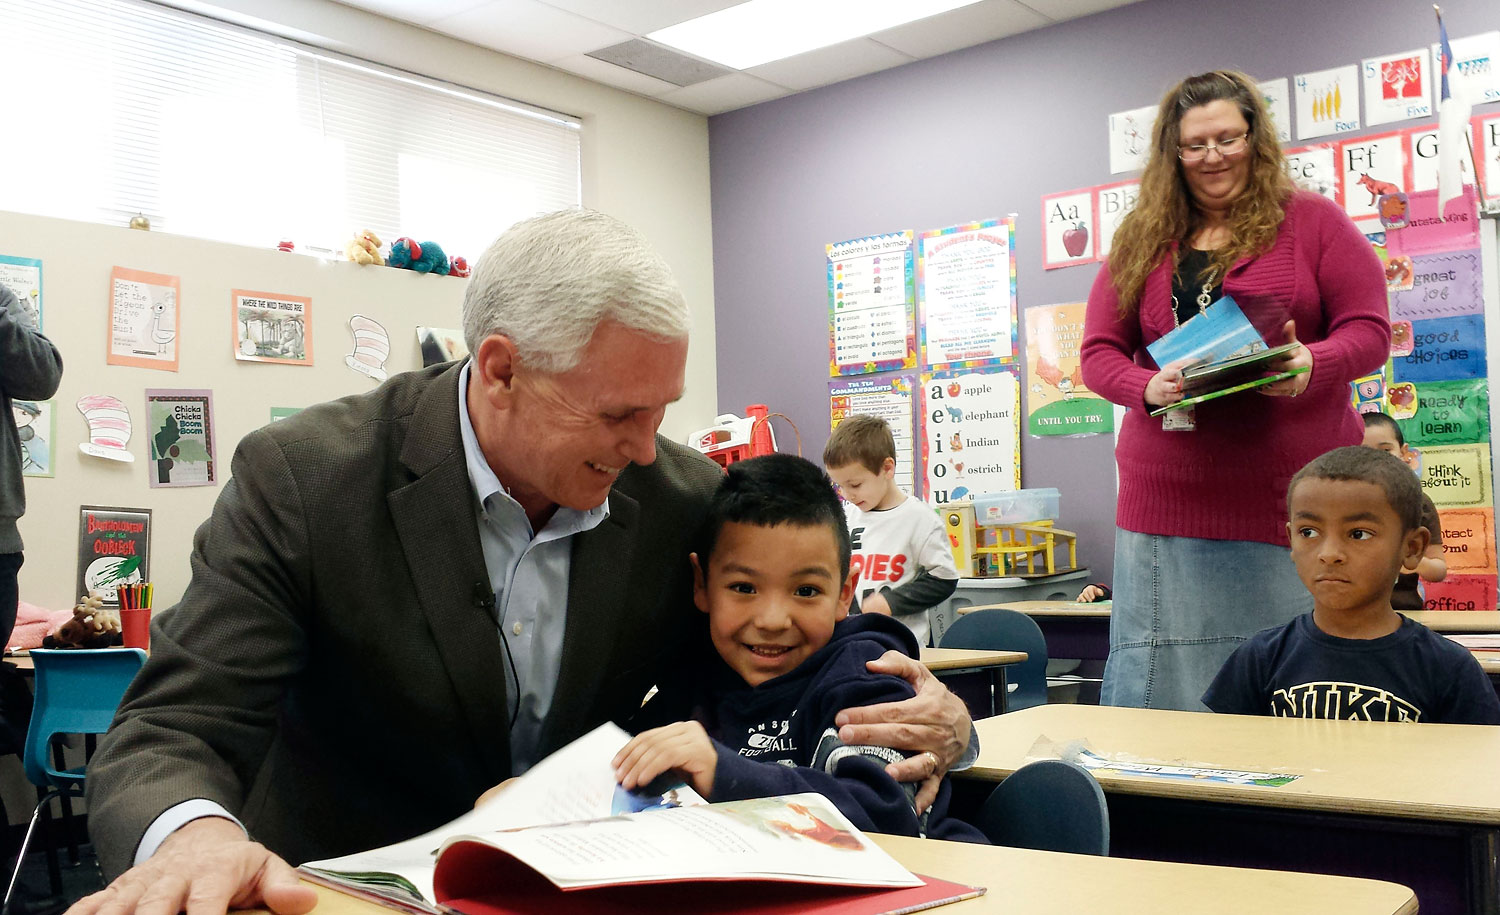 Indiana Republican Gov. Mike Pence embraces a preschool student at the Shepherd Community Center in Indianapolis, Feb. 26, 2014.